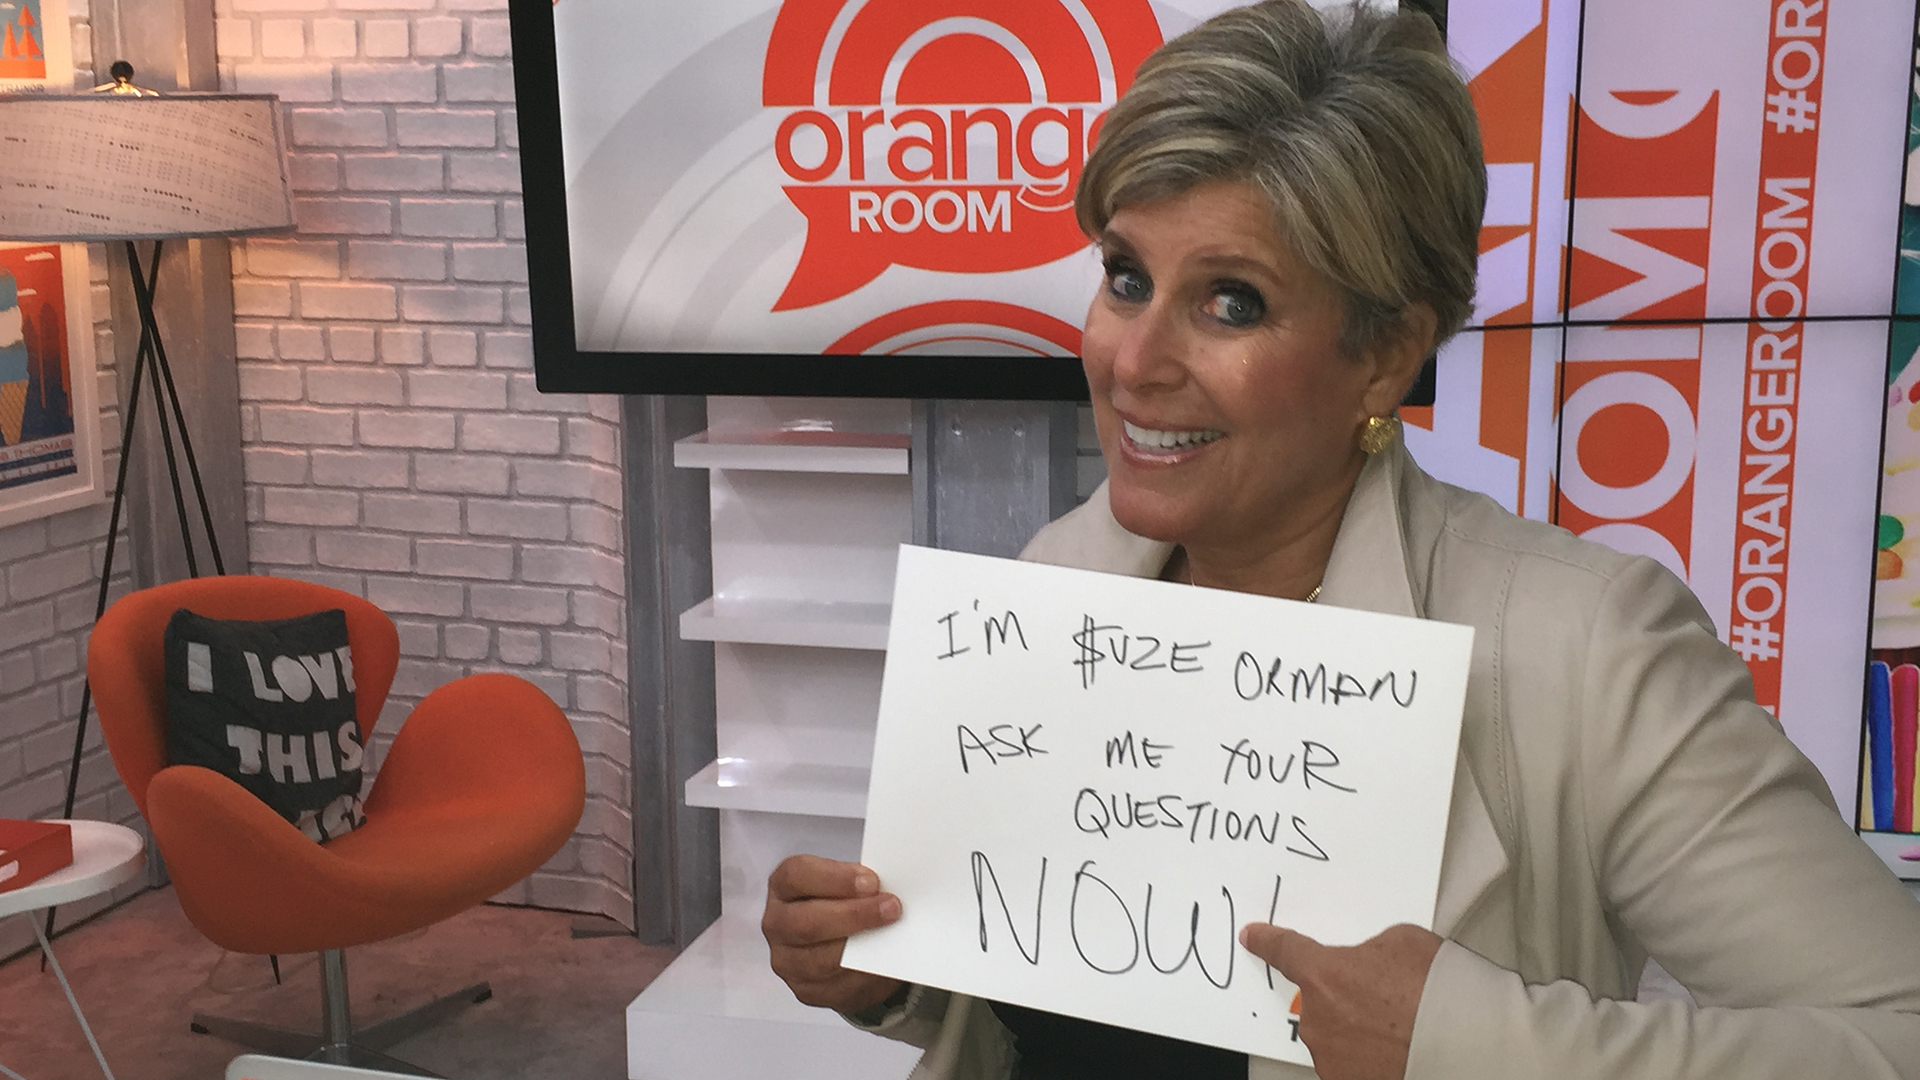 Suze orman answers 22 questions on student loans investing and suze orman answers 22 questions on student loans investing and retirement solutioingenieria Choice Image